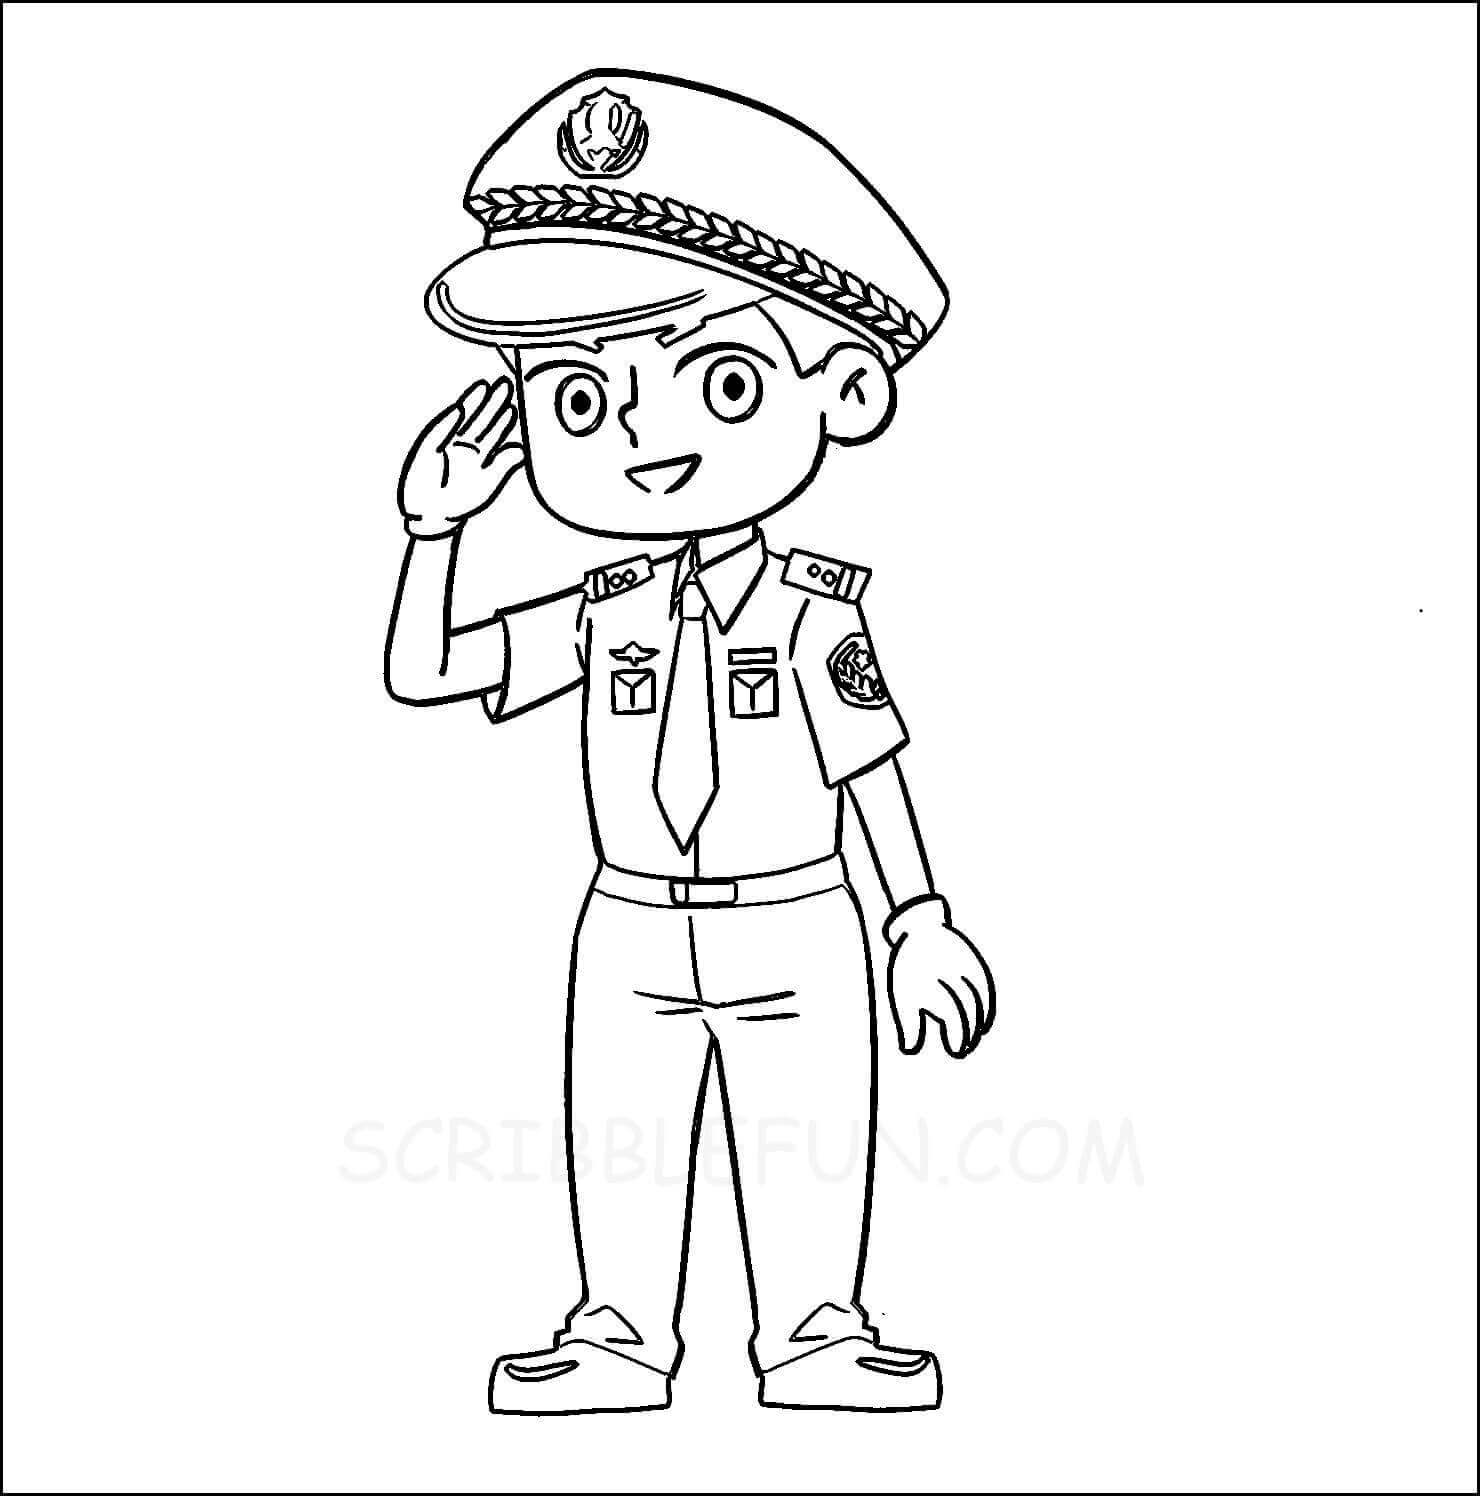 Policeman coloring page